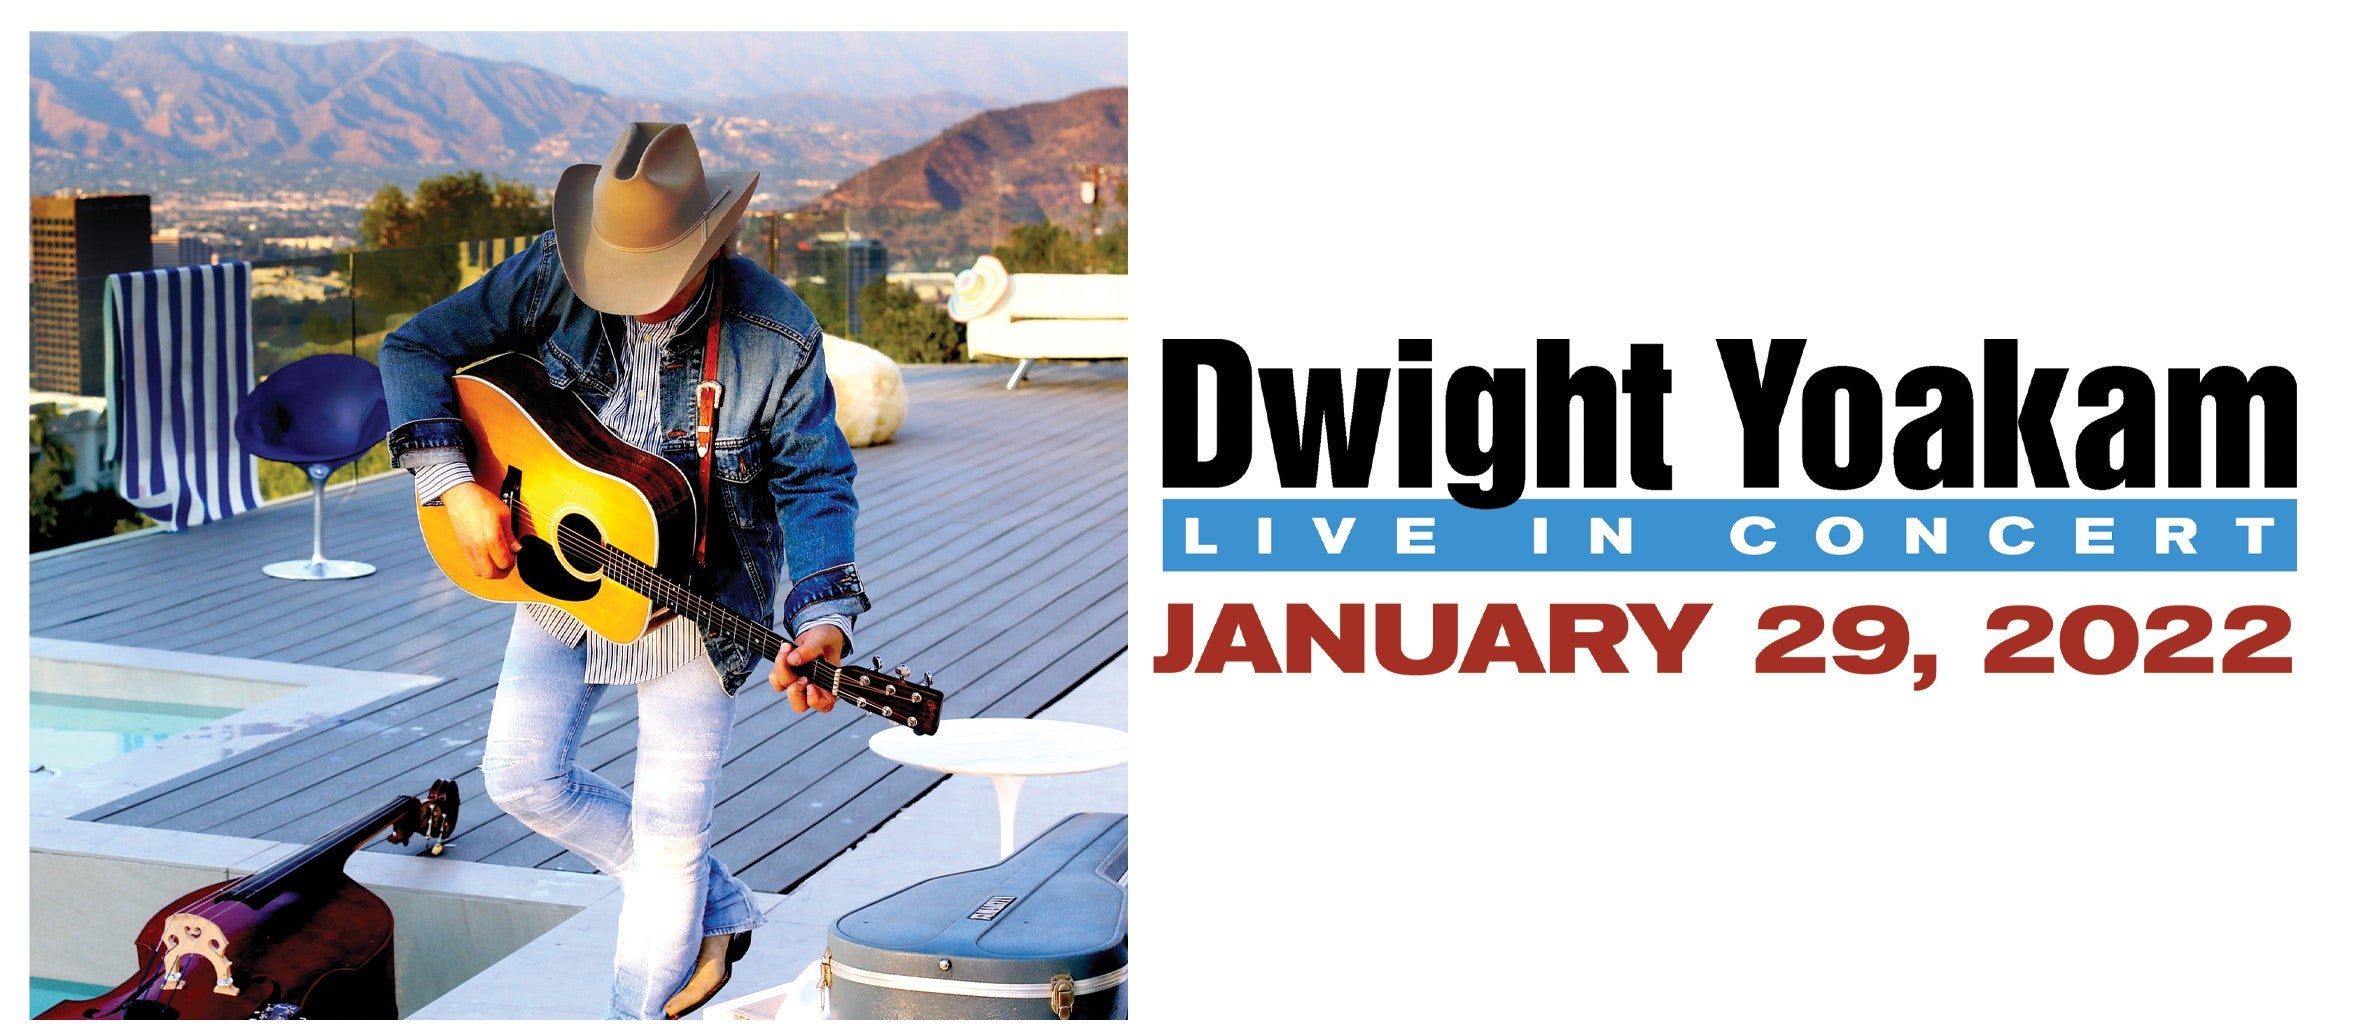 Dwight Yoakam Live In Concert